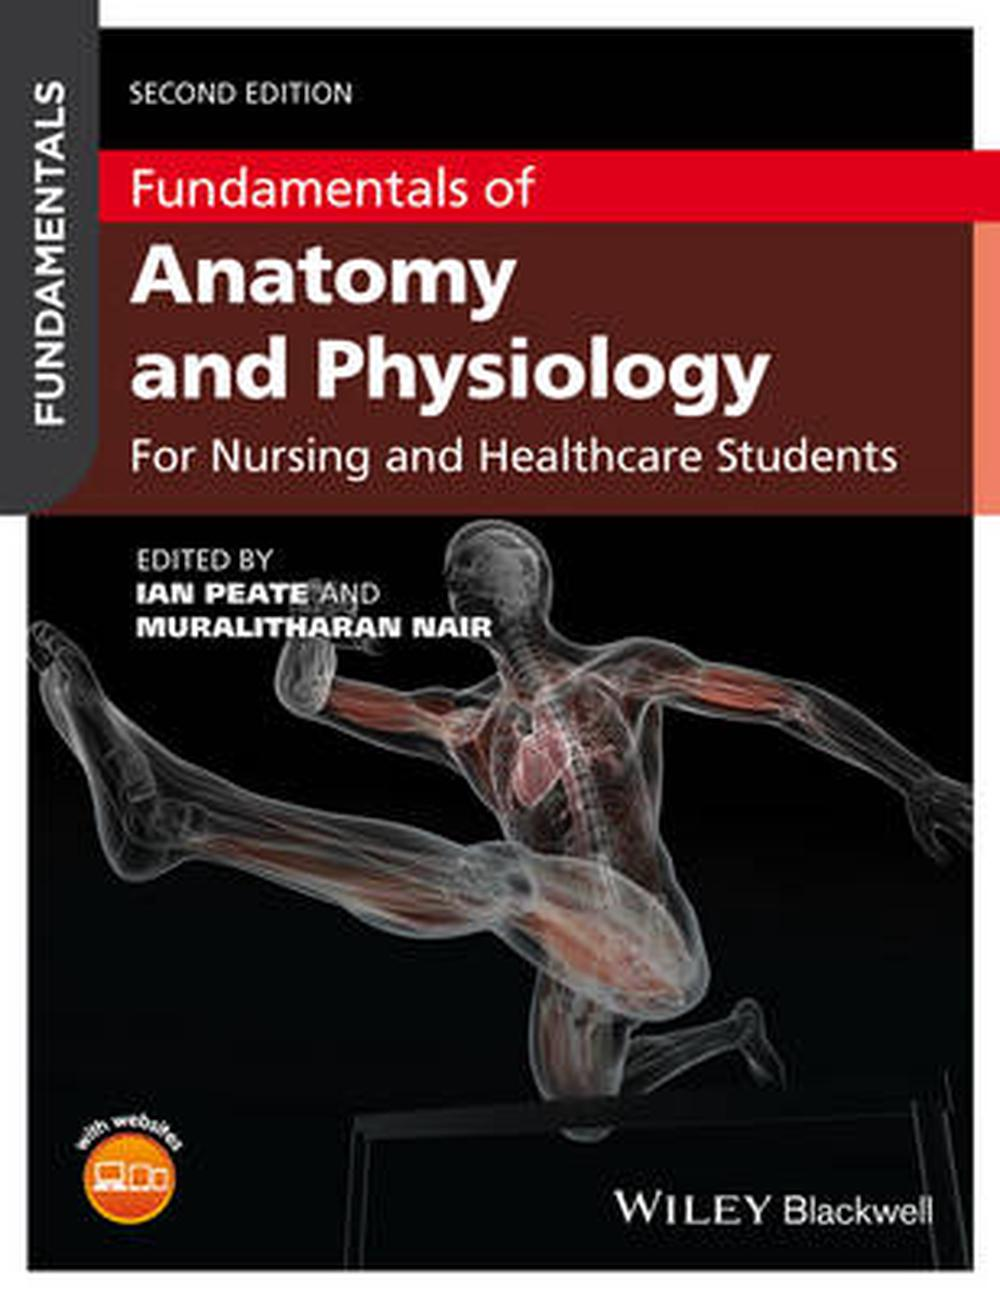 Anatomy and Physiology for Nursing and Health 8858912 ...